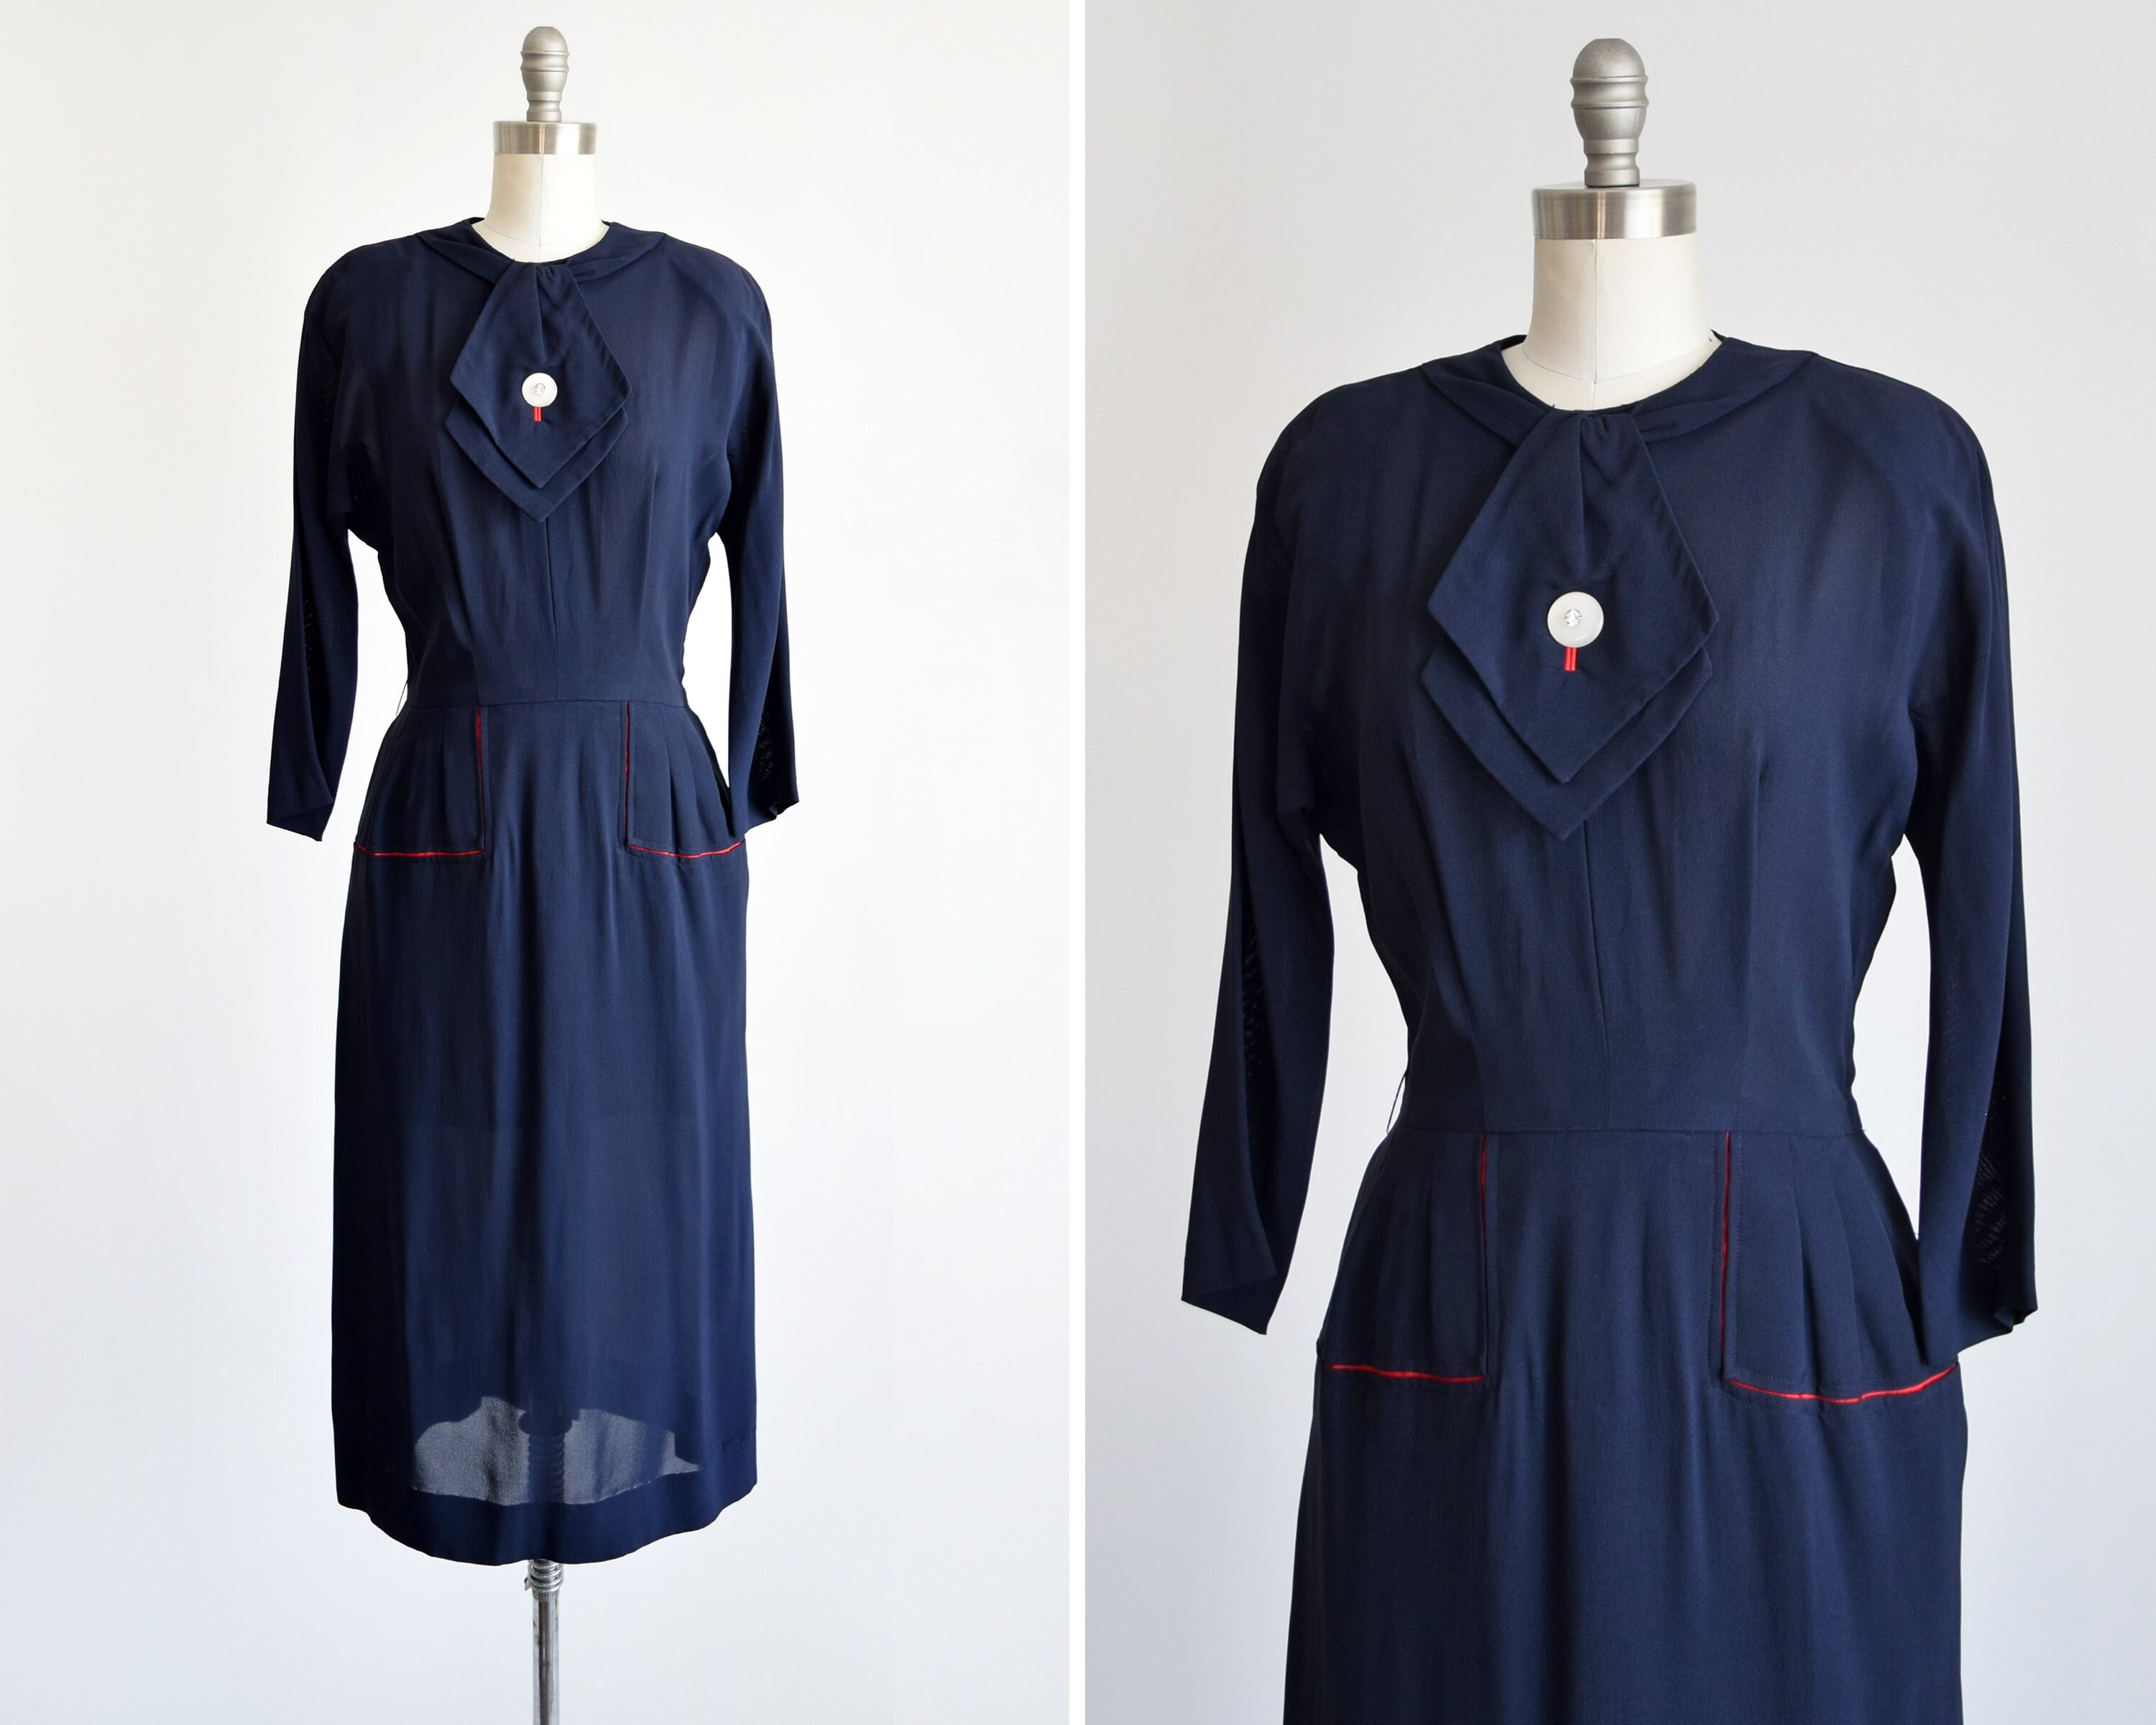 Vintage Scarf Styles -1920s to 1960s 40S Navy Blue Dress, Vintage 1940S Long Sleeve Rayon Dress with Rhinestone Ascot  Red Trimmed Pockets Styled By Georgia Wells, Small $152.00 AT vintagedancer.com